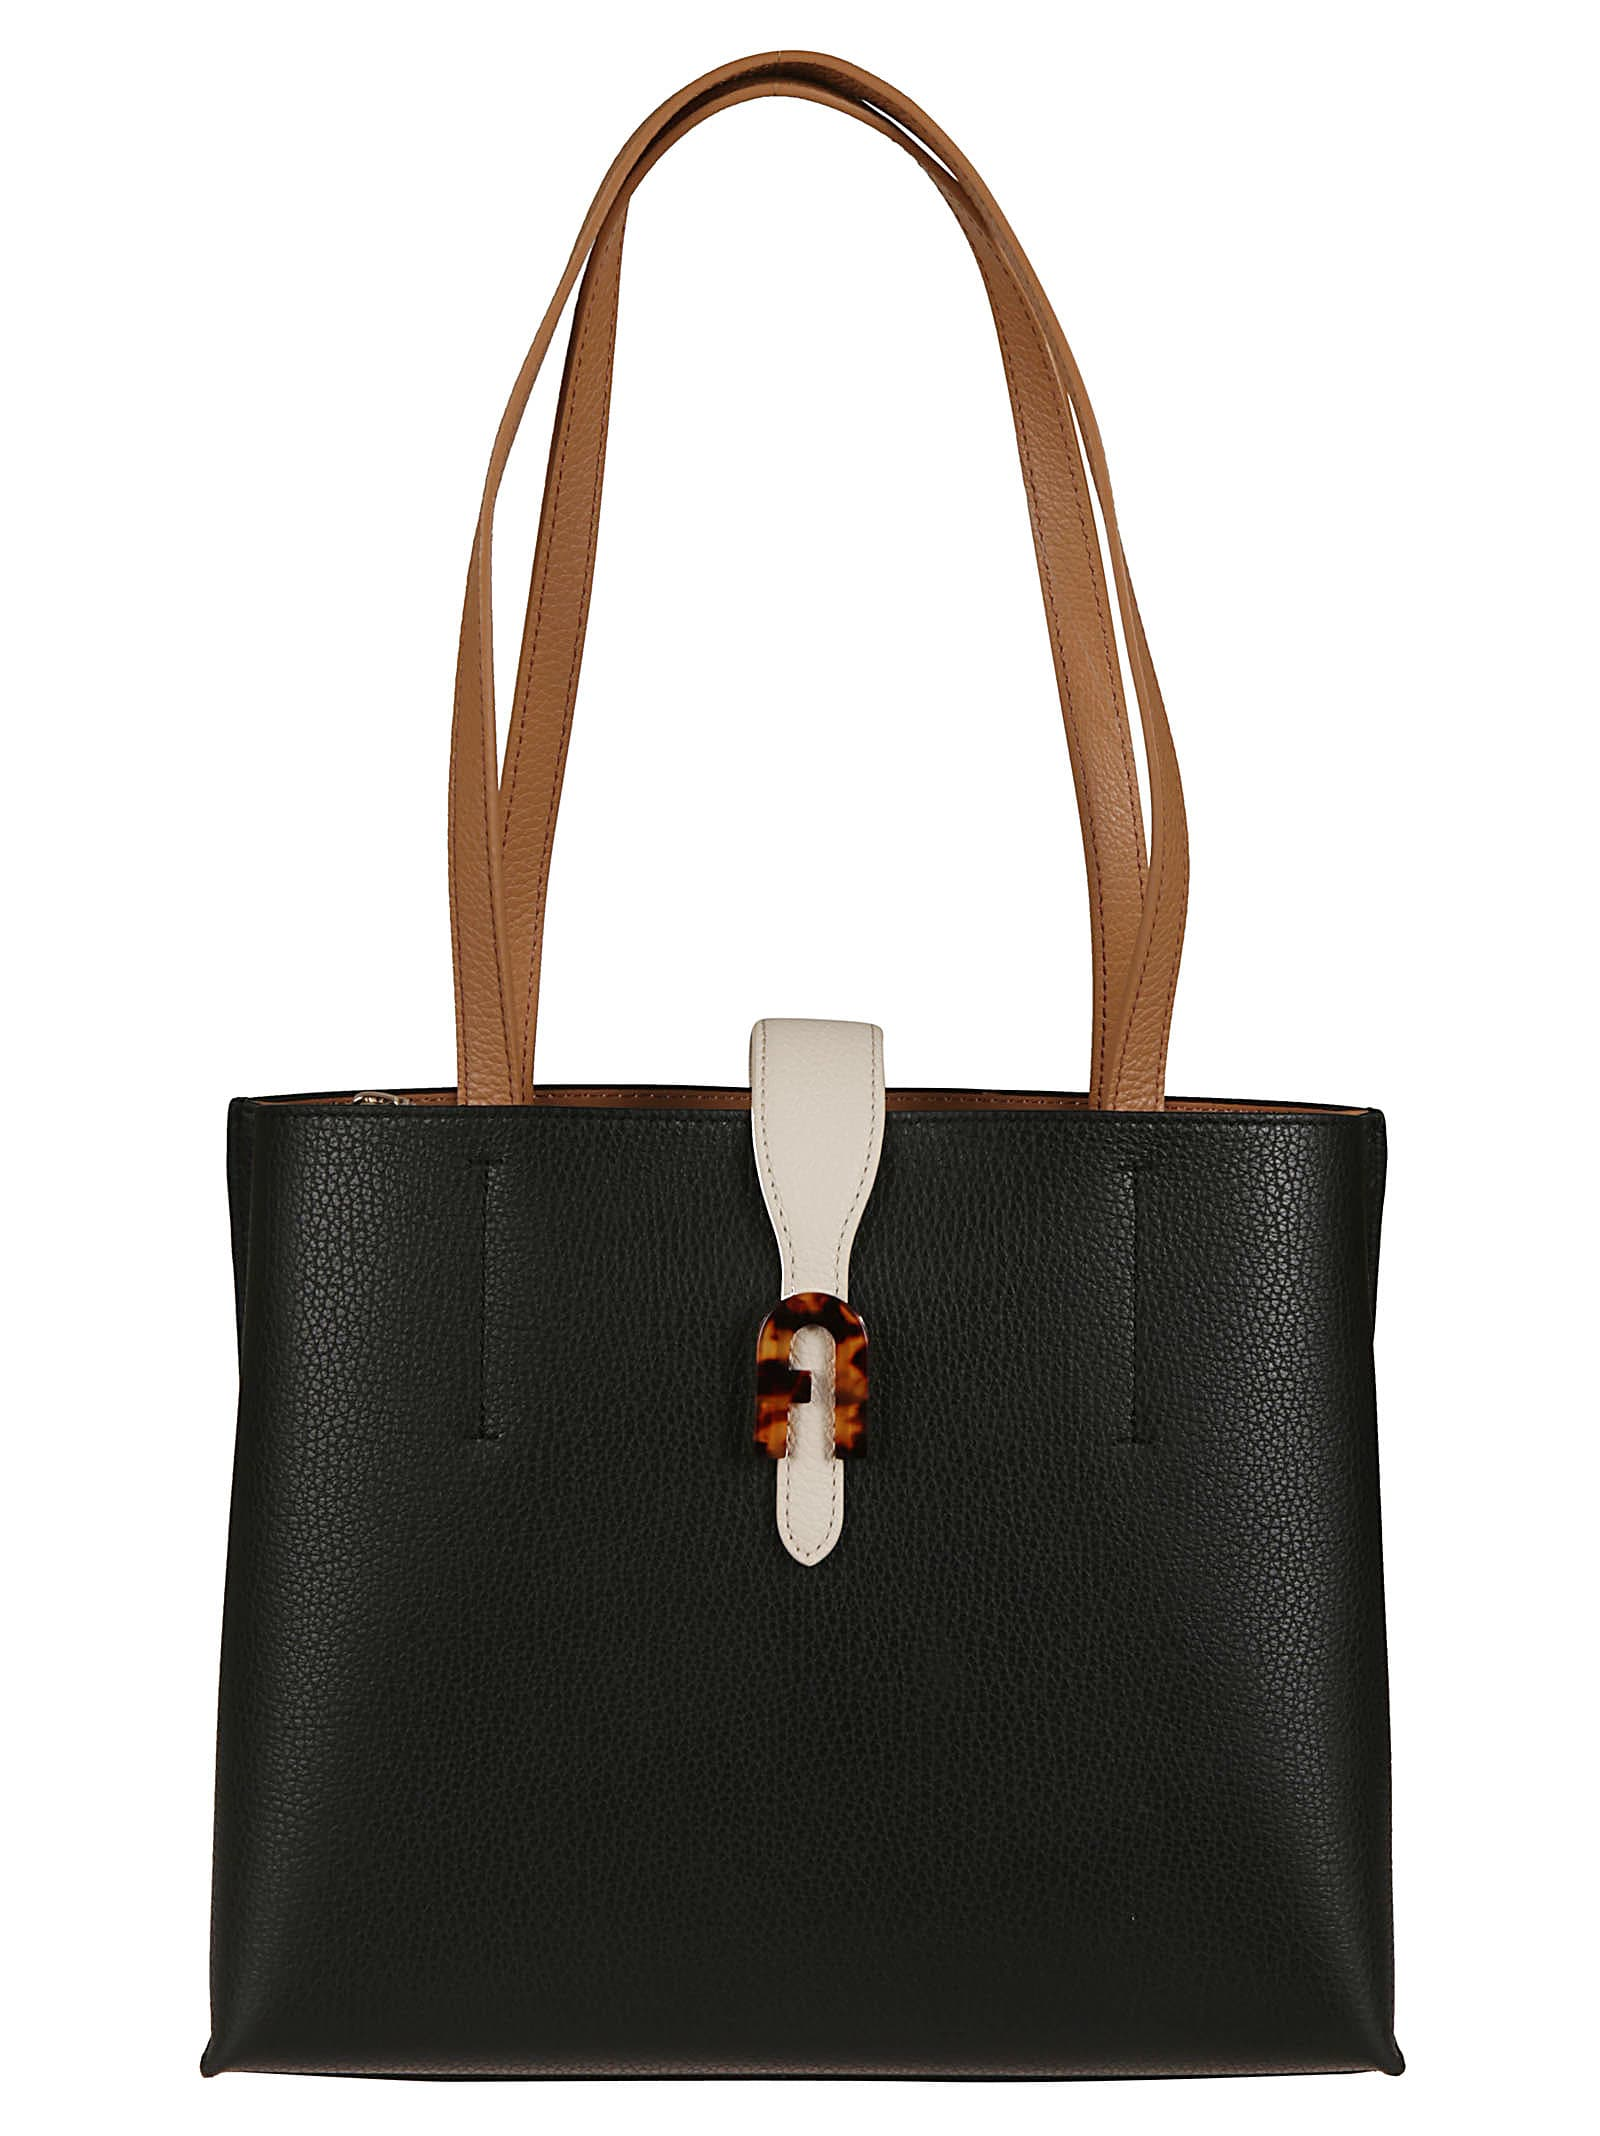 Furla Leathers MEDIUM SOFIA TOTE